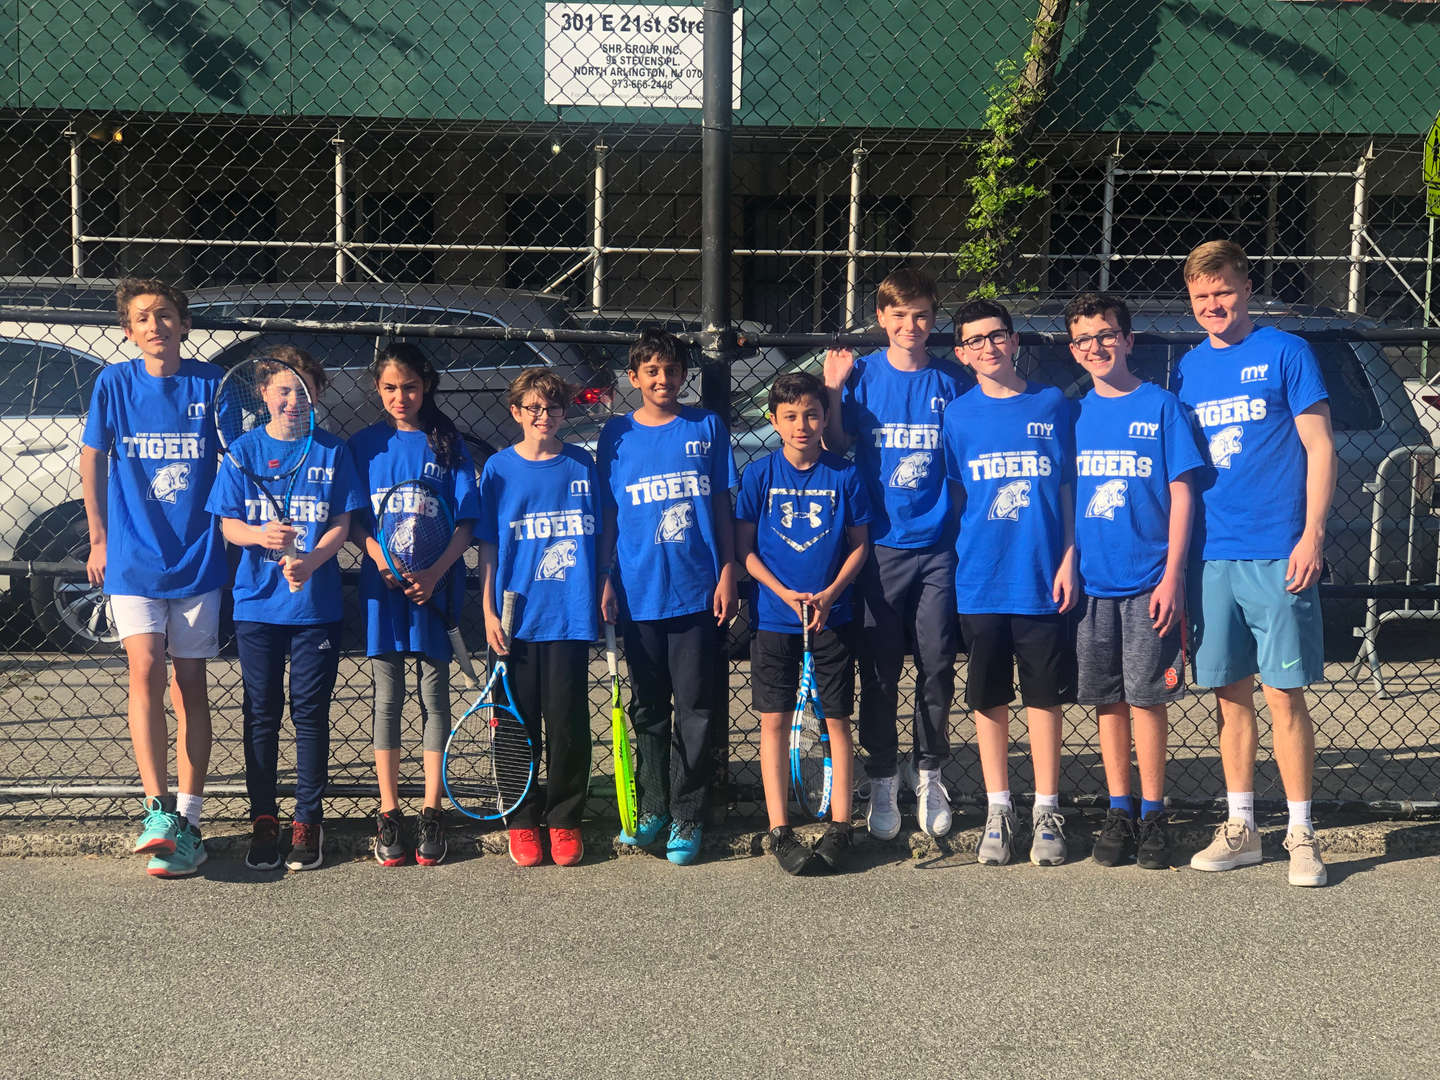 Photo of ESMS Tennis Team - 2018 - 2019